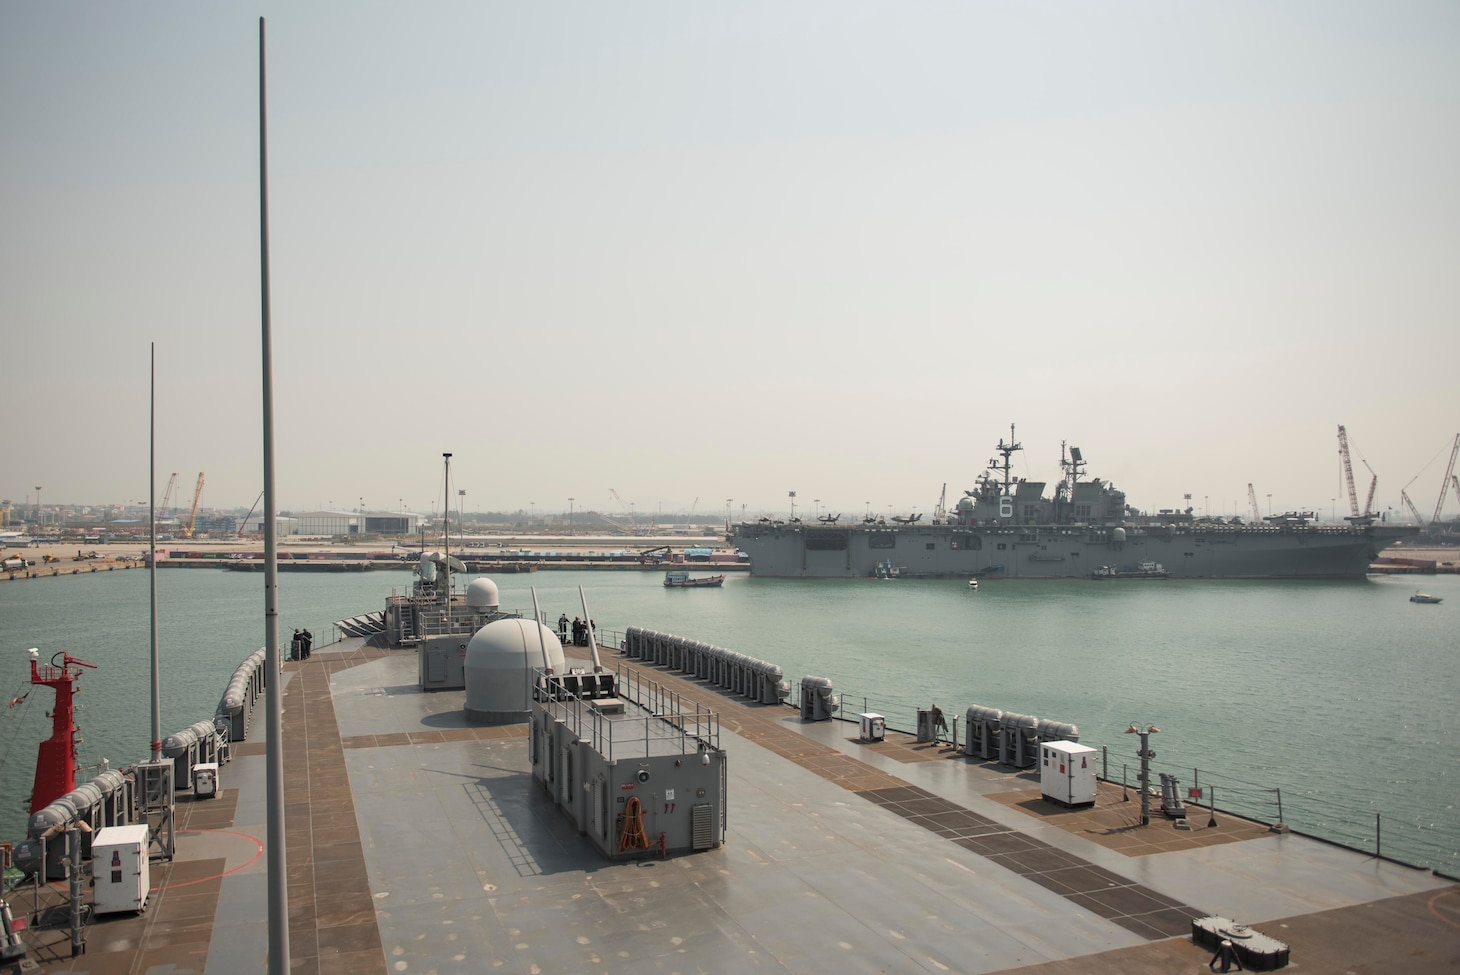 LAEM CHABANG, Thailand (Feb. 23, 2020) - U.S. 7th Fleet flagship USS Blue Ridge (LCC 19) arrives in Laem Chabang, Thailand for a regularly scheduled port visit. During the visit, Sailors will engage with the local culture, host military-to-military engagements and build relationships through music and public service activities.